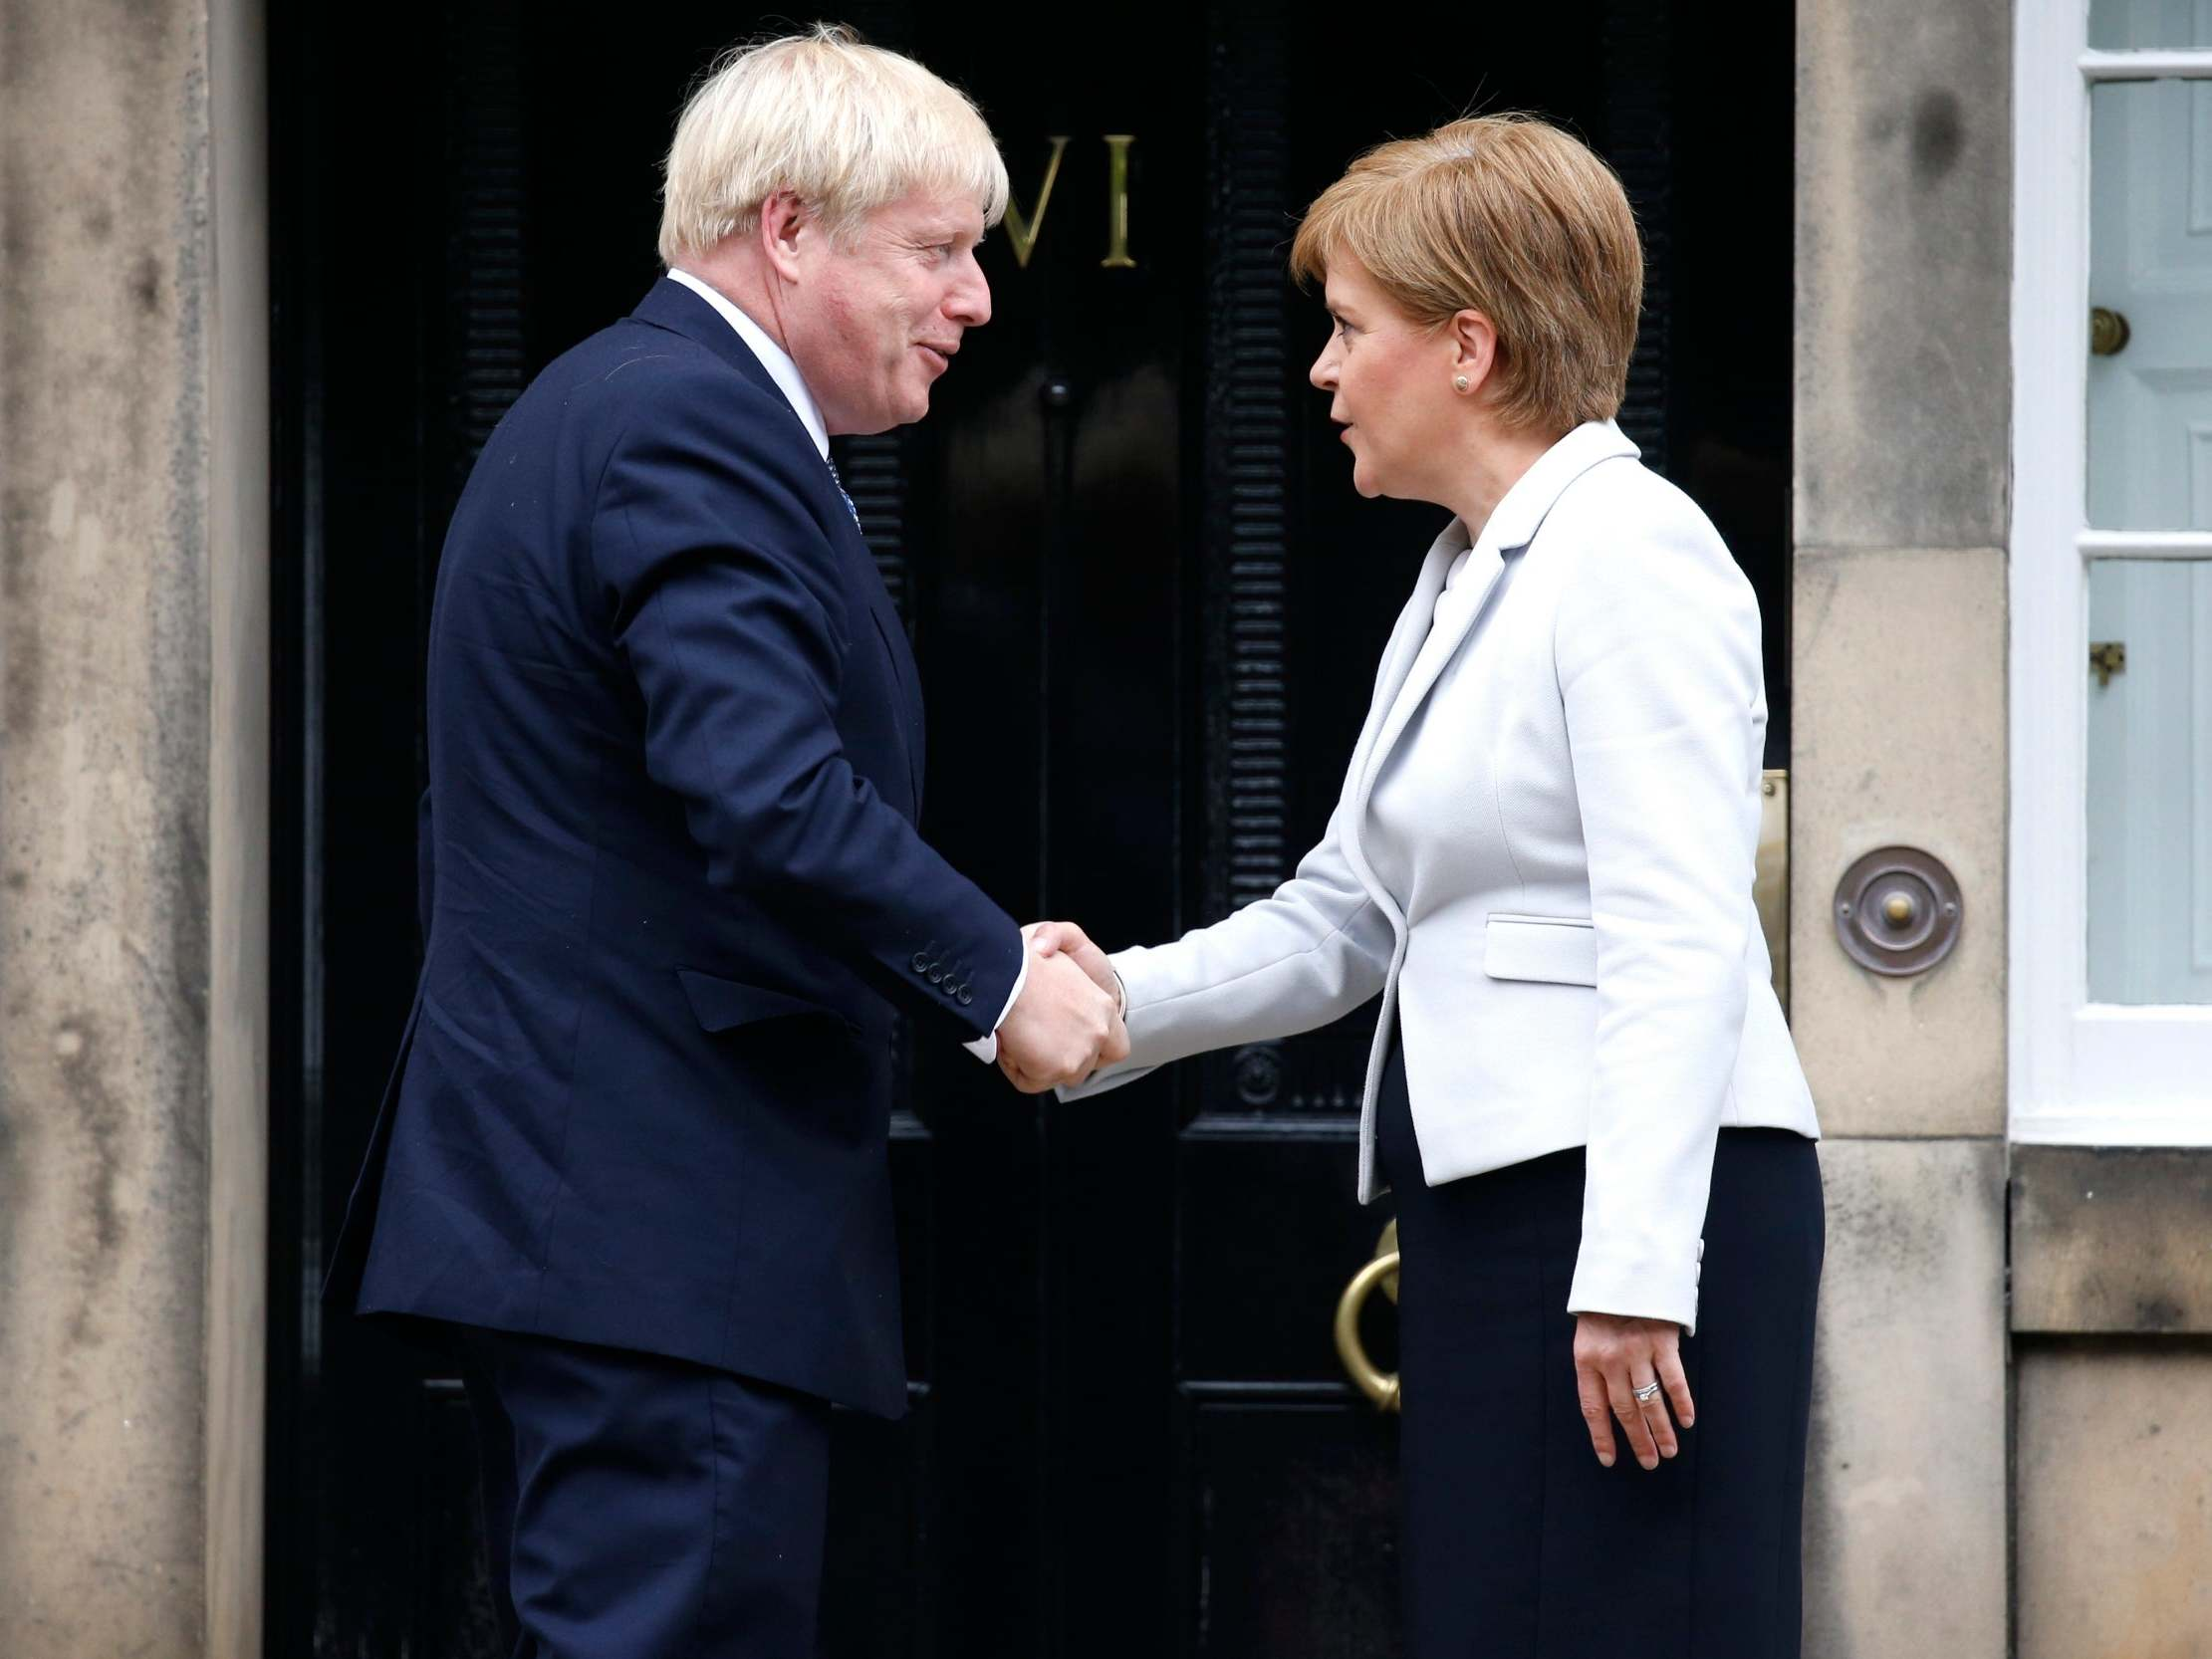 English people, kindly keep your nose out of debates about Scottish and Welsh independence